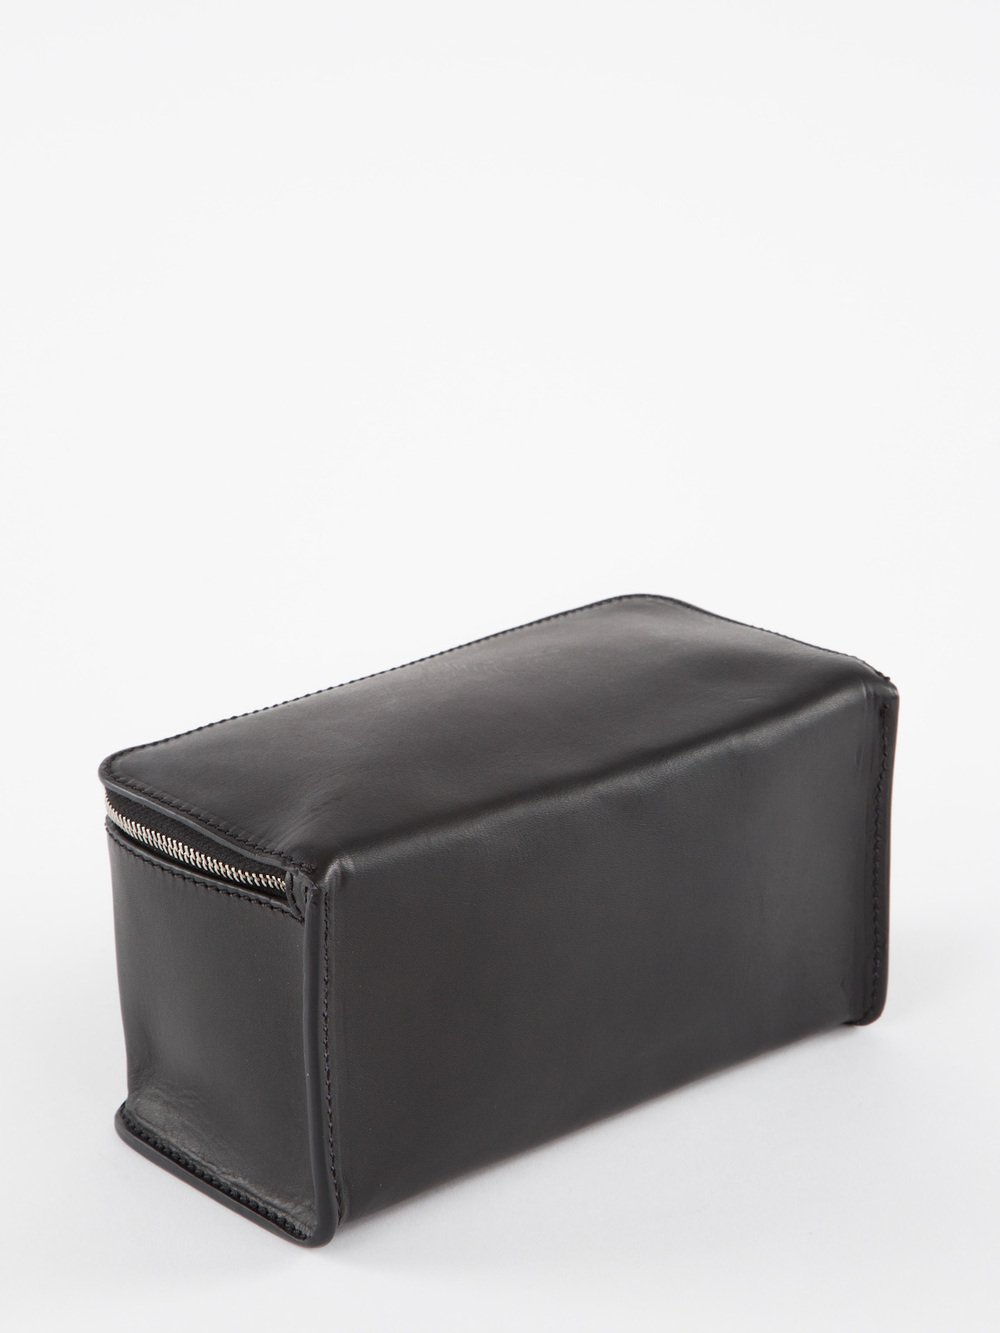 RICK OWENS - SMALL CASE